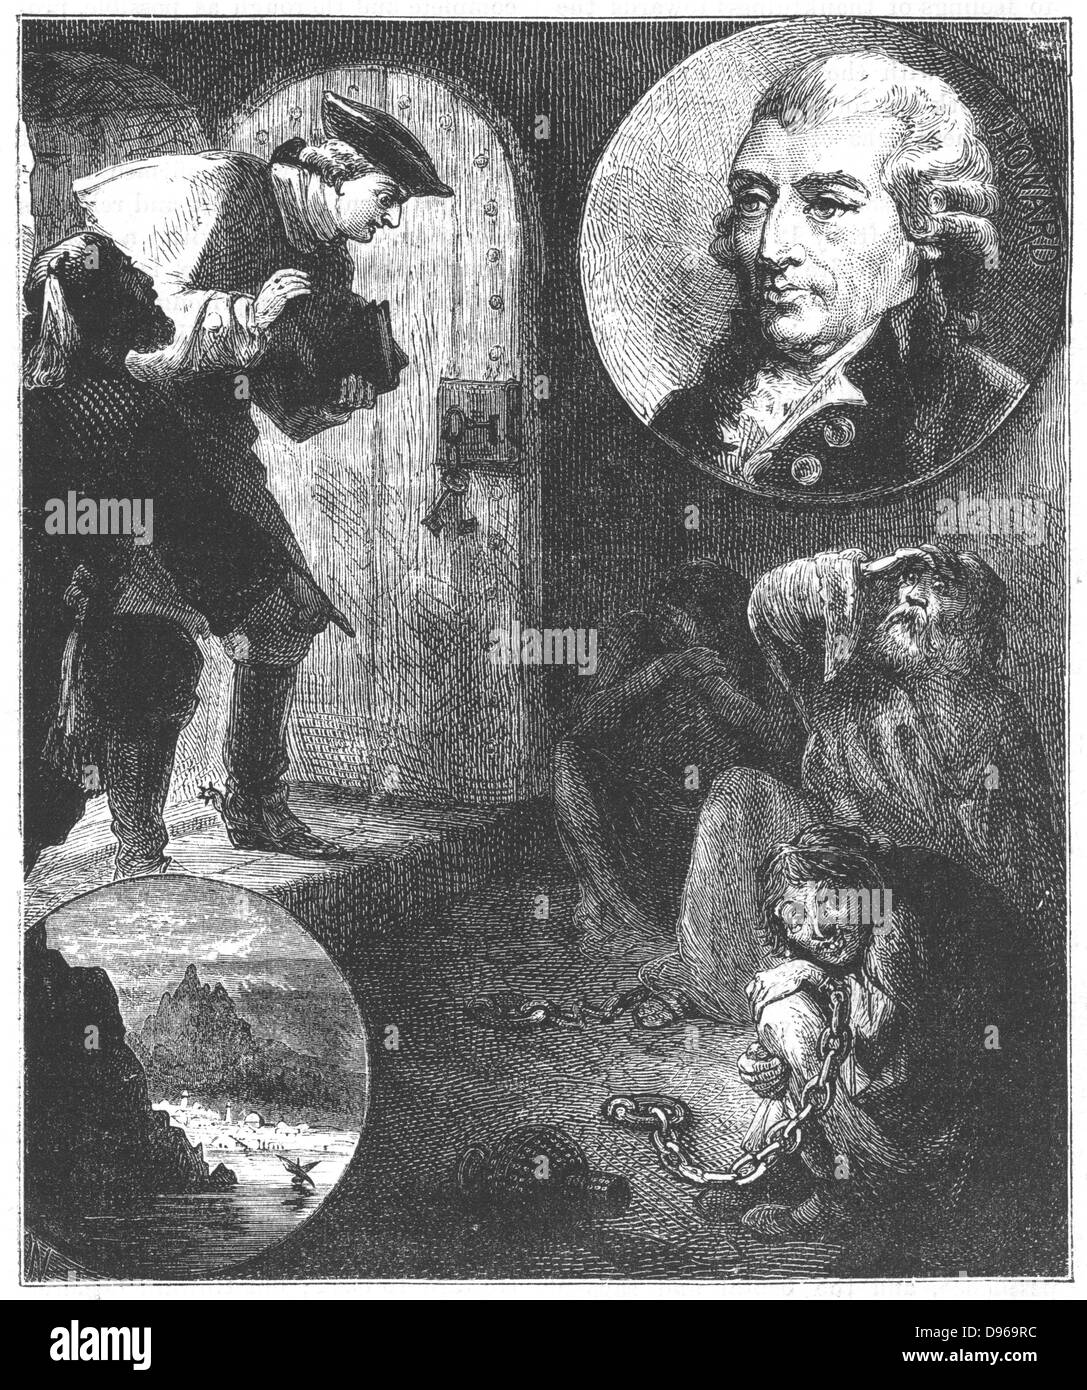 John Howard (1726-90) English prison reformer. From 1773 began campaign to  improve awful conditions in English prisons.